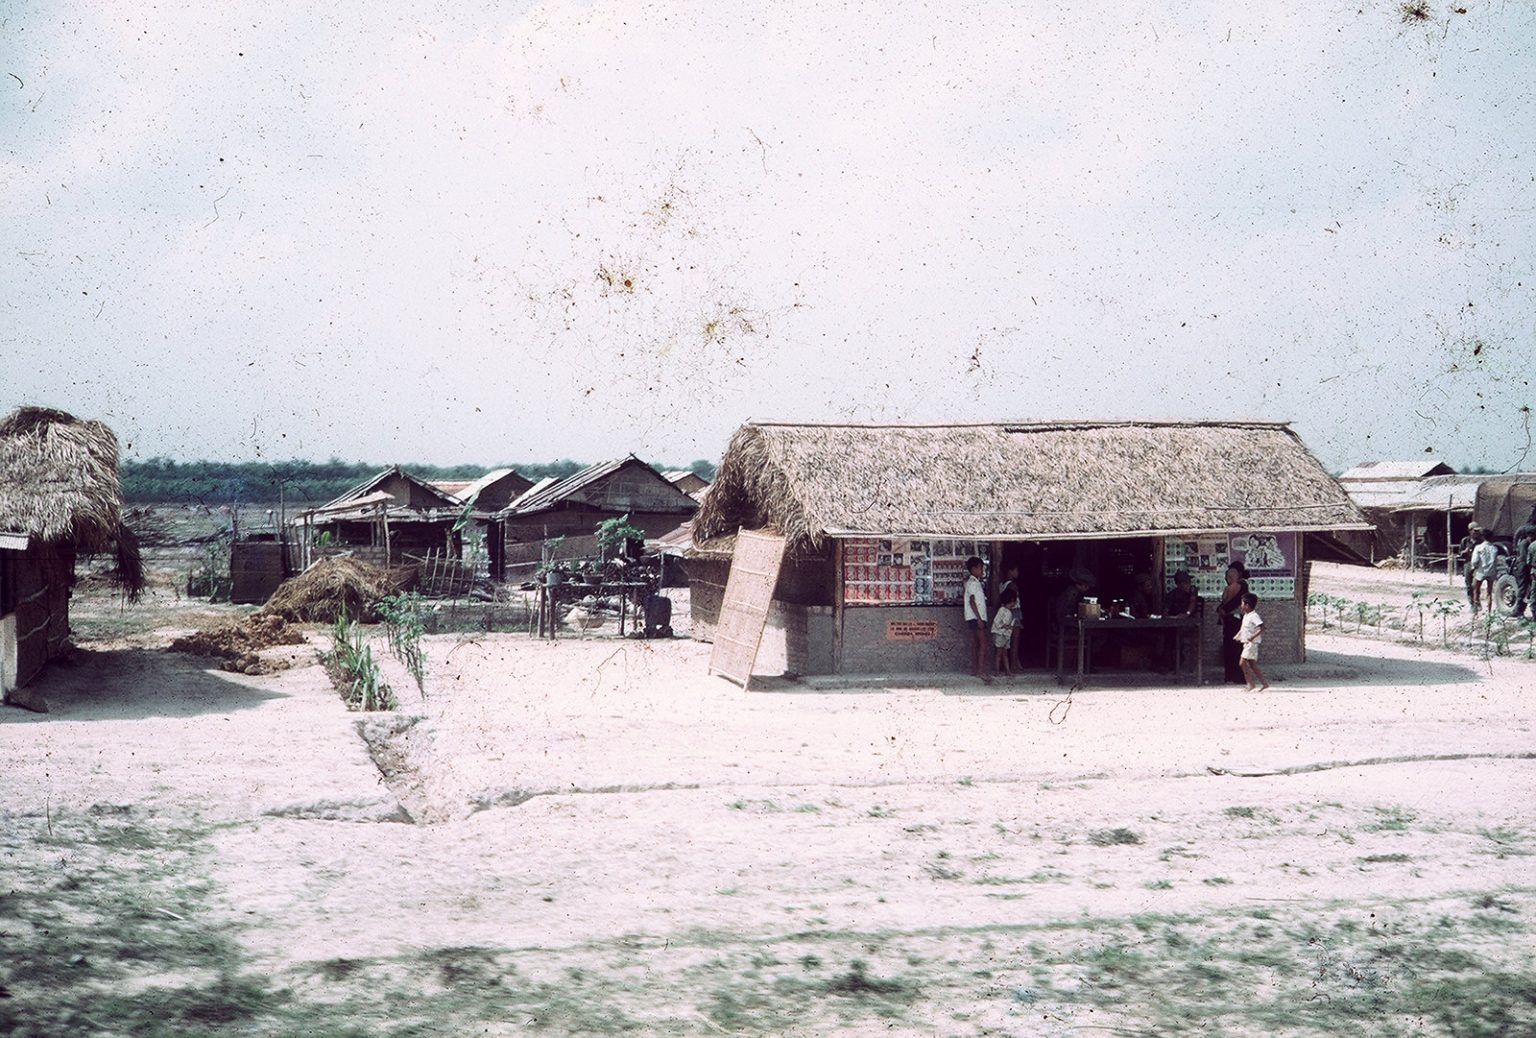 Reminiscing photos of the Southern Cu Chi town in 1960s